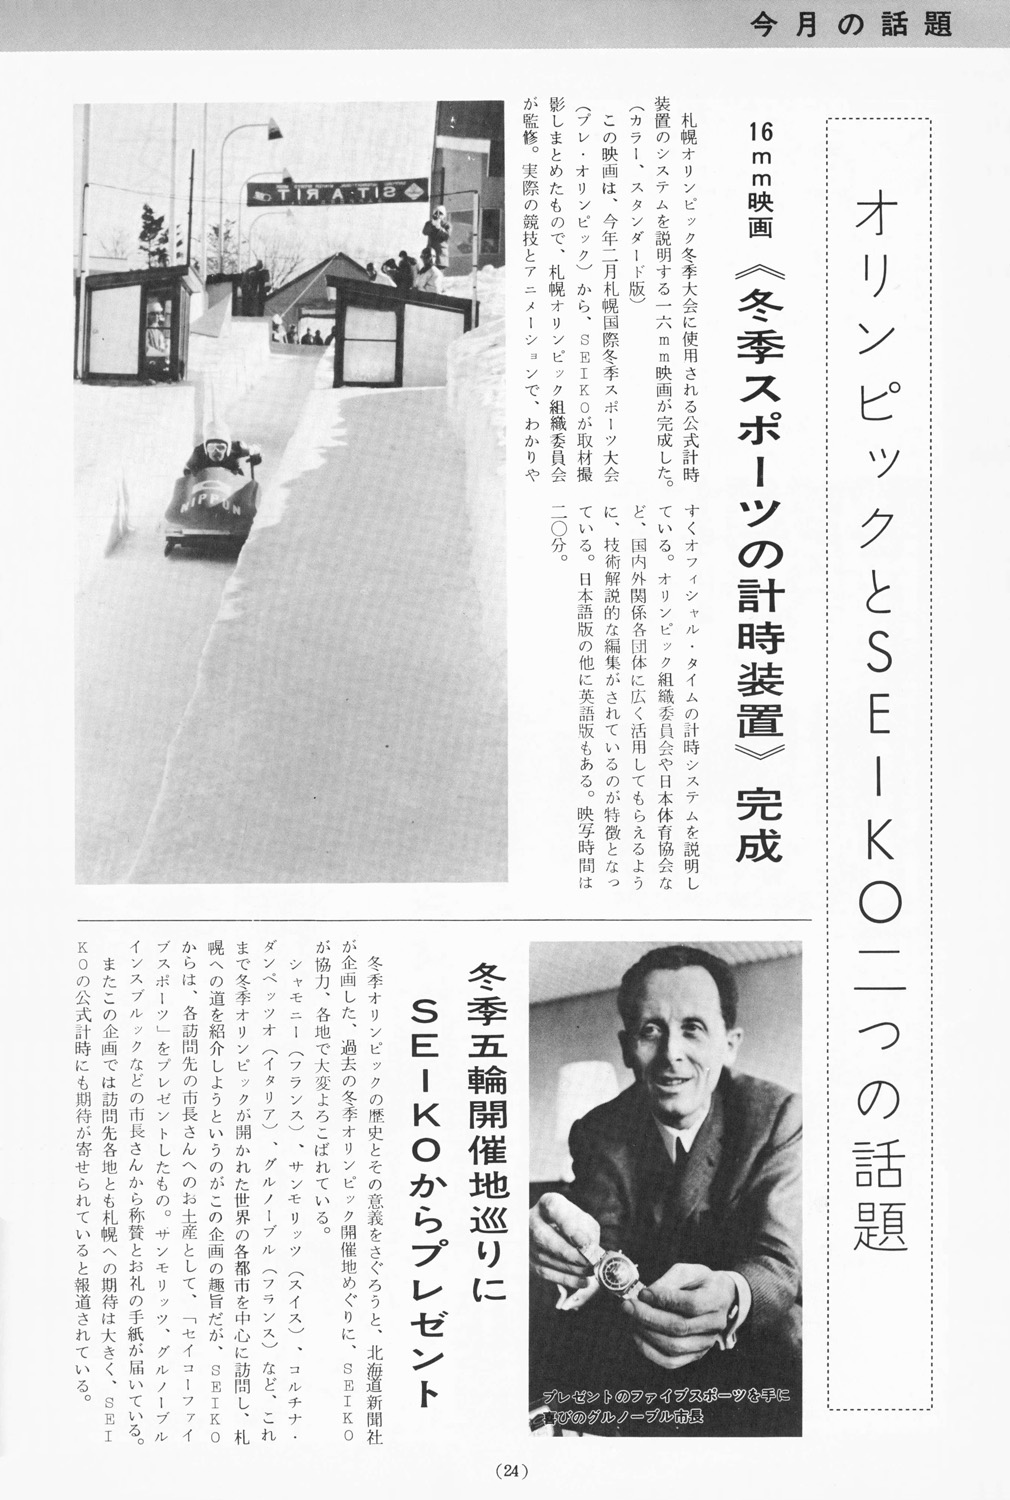 Suwa Internal Magazine - June '71